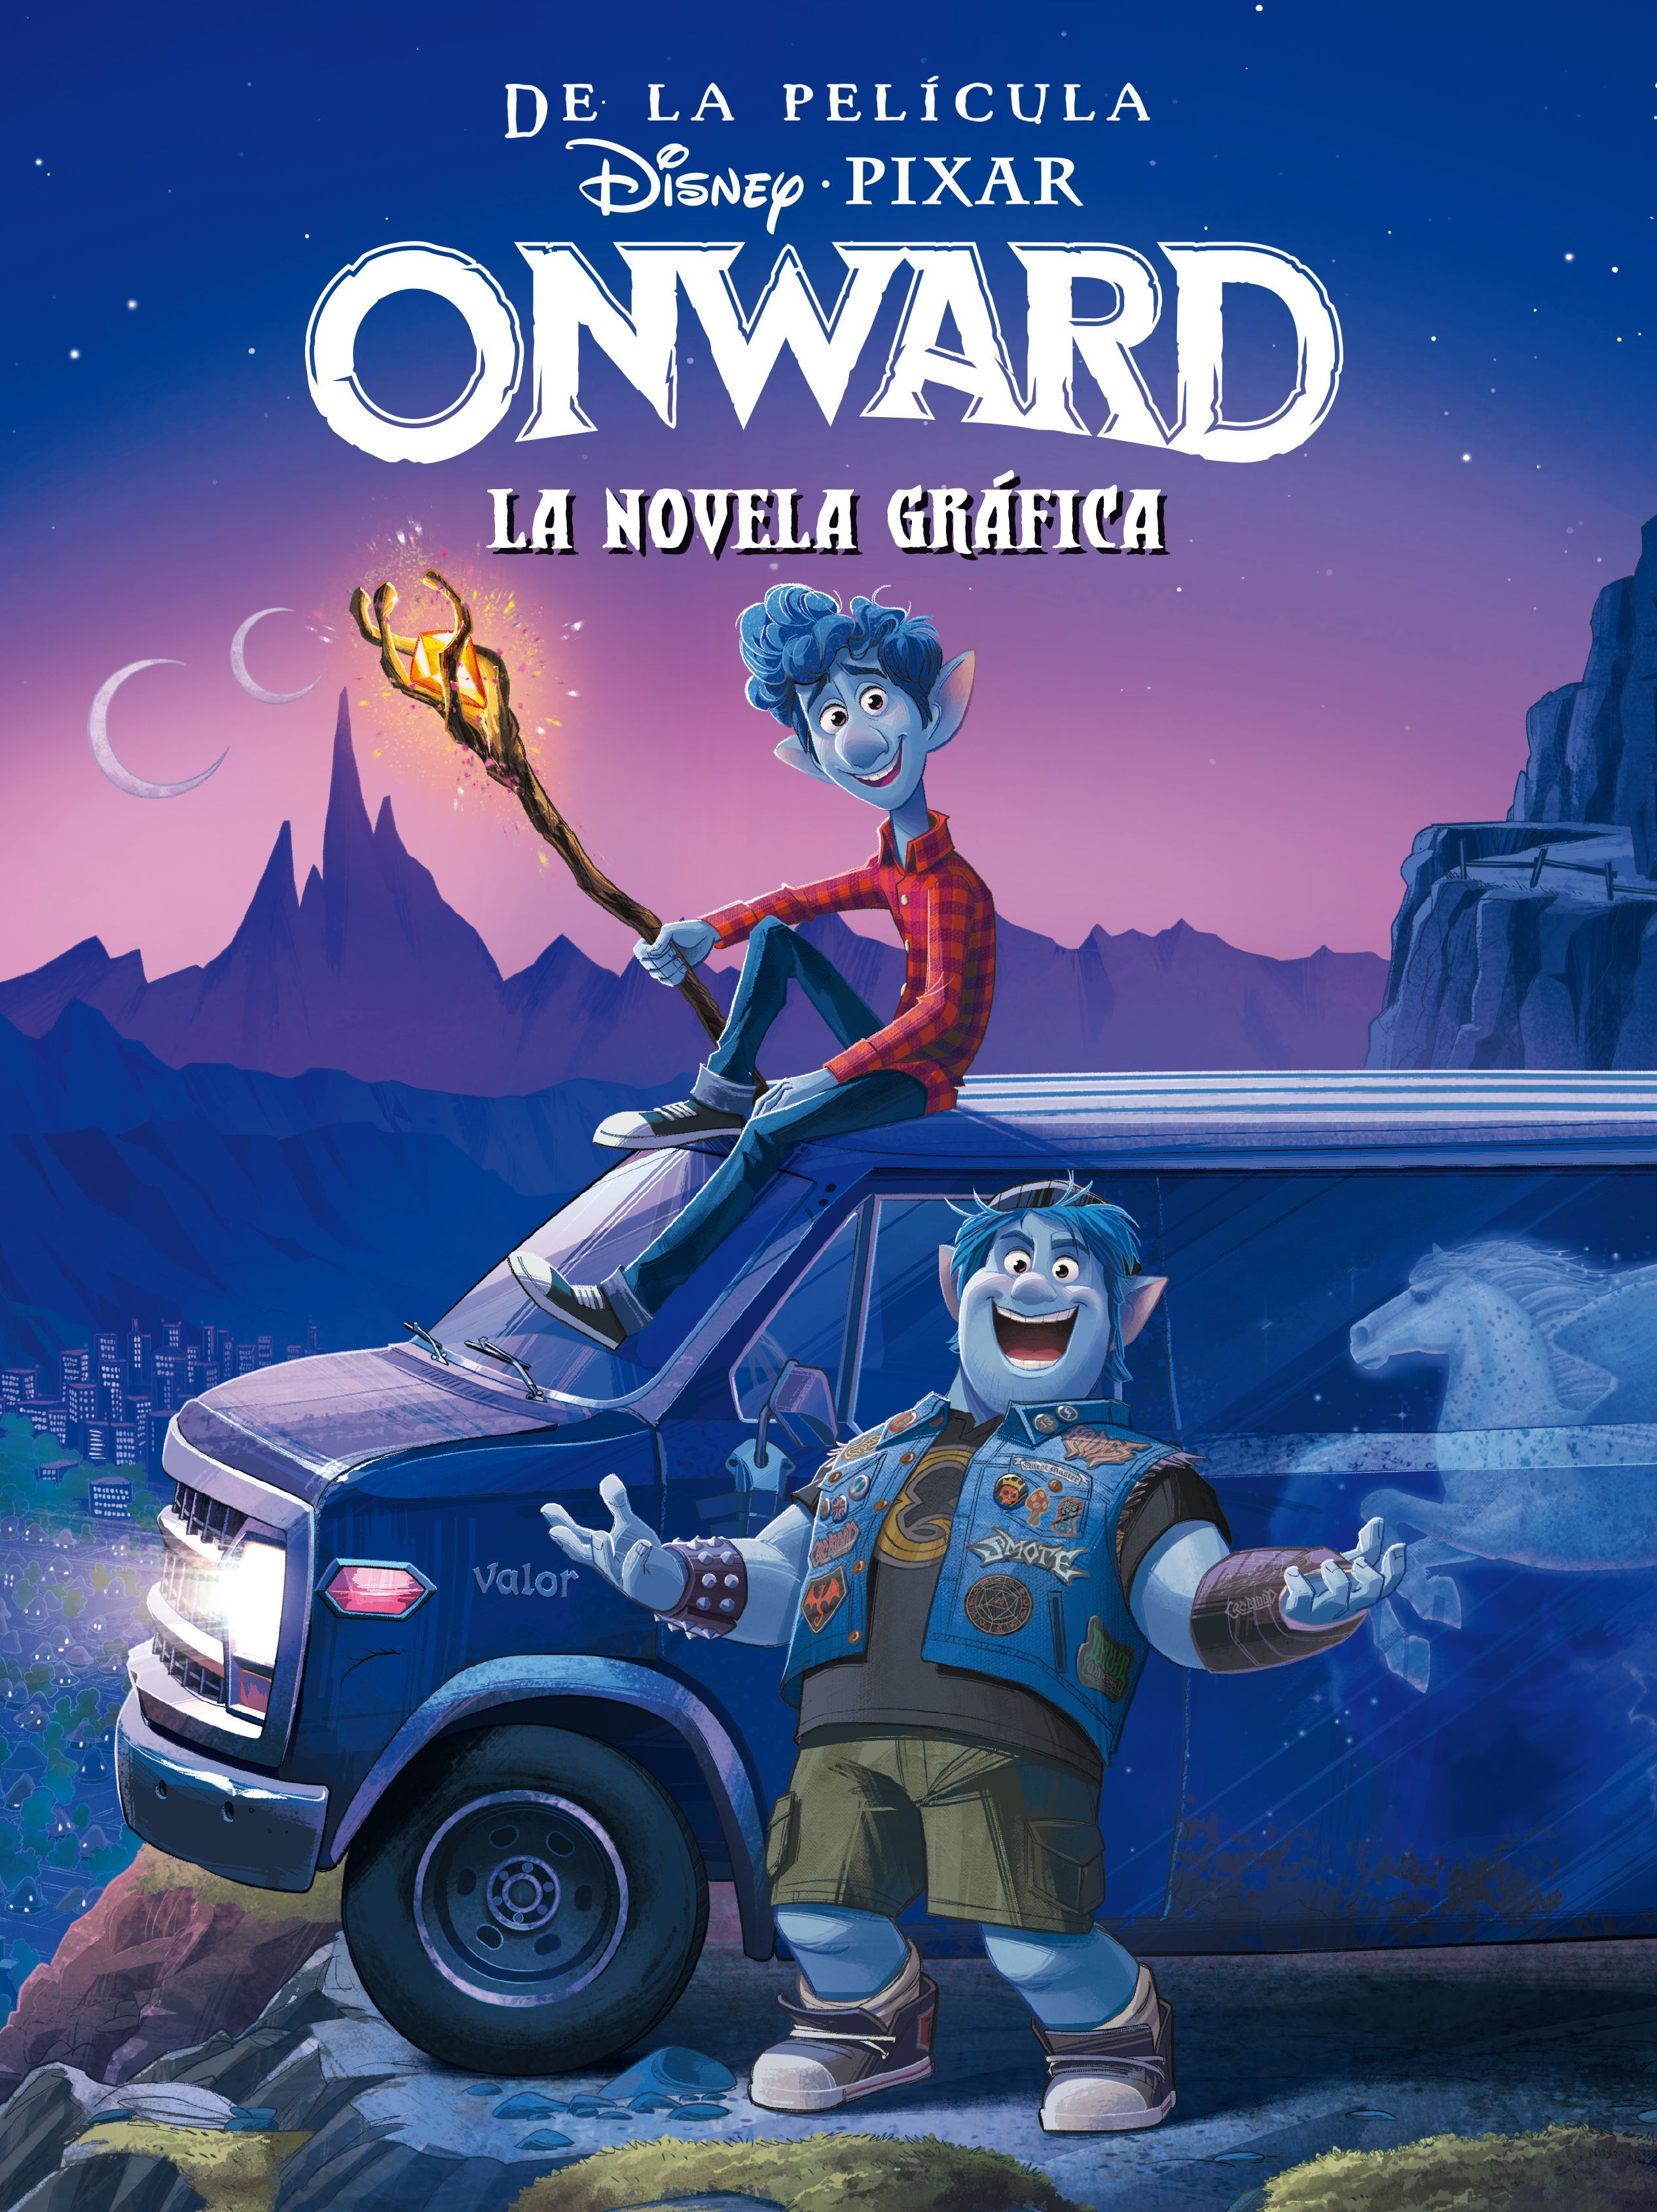 ONWARD LA NOVELA GRAFICA